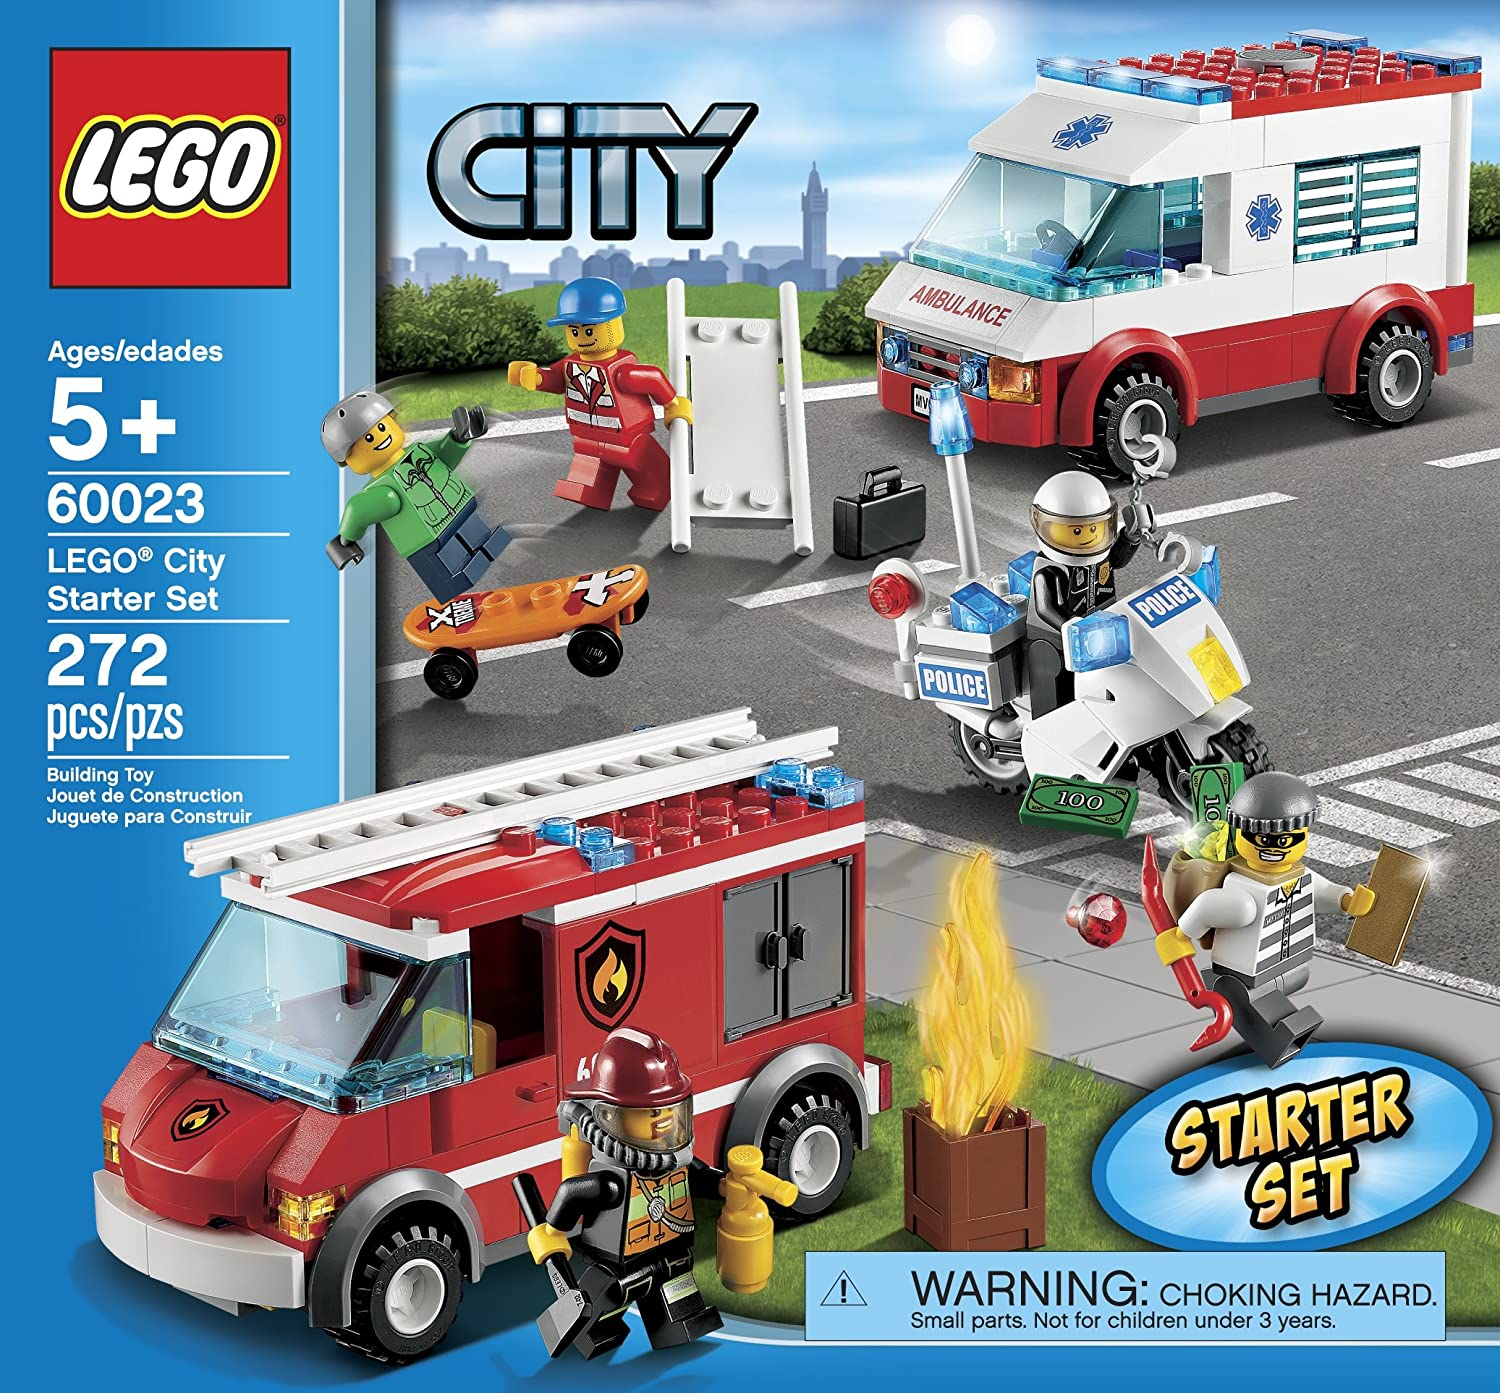 Toys toy boxes and fire trucks on pinterest - Toys Toy Boxes And Fire Trucks On Pinterest 51